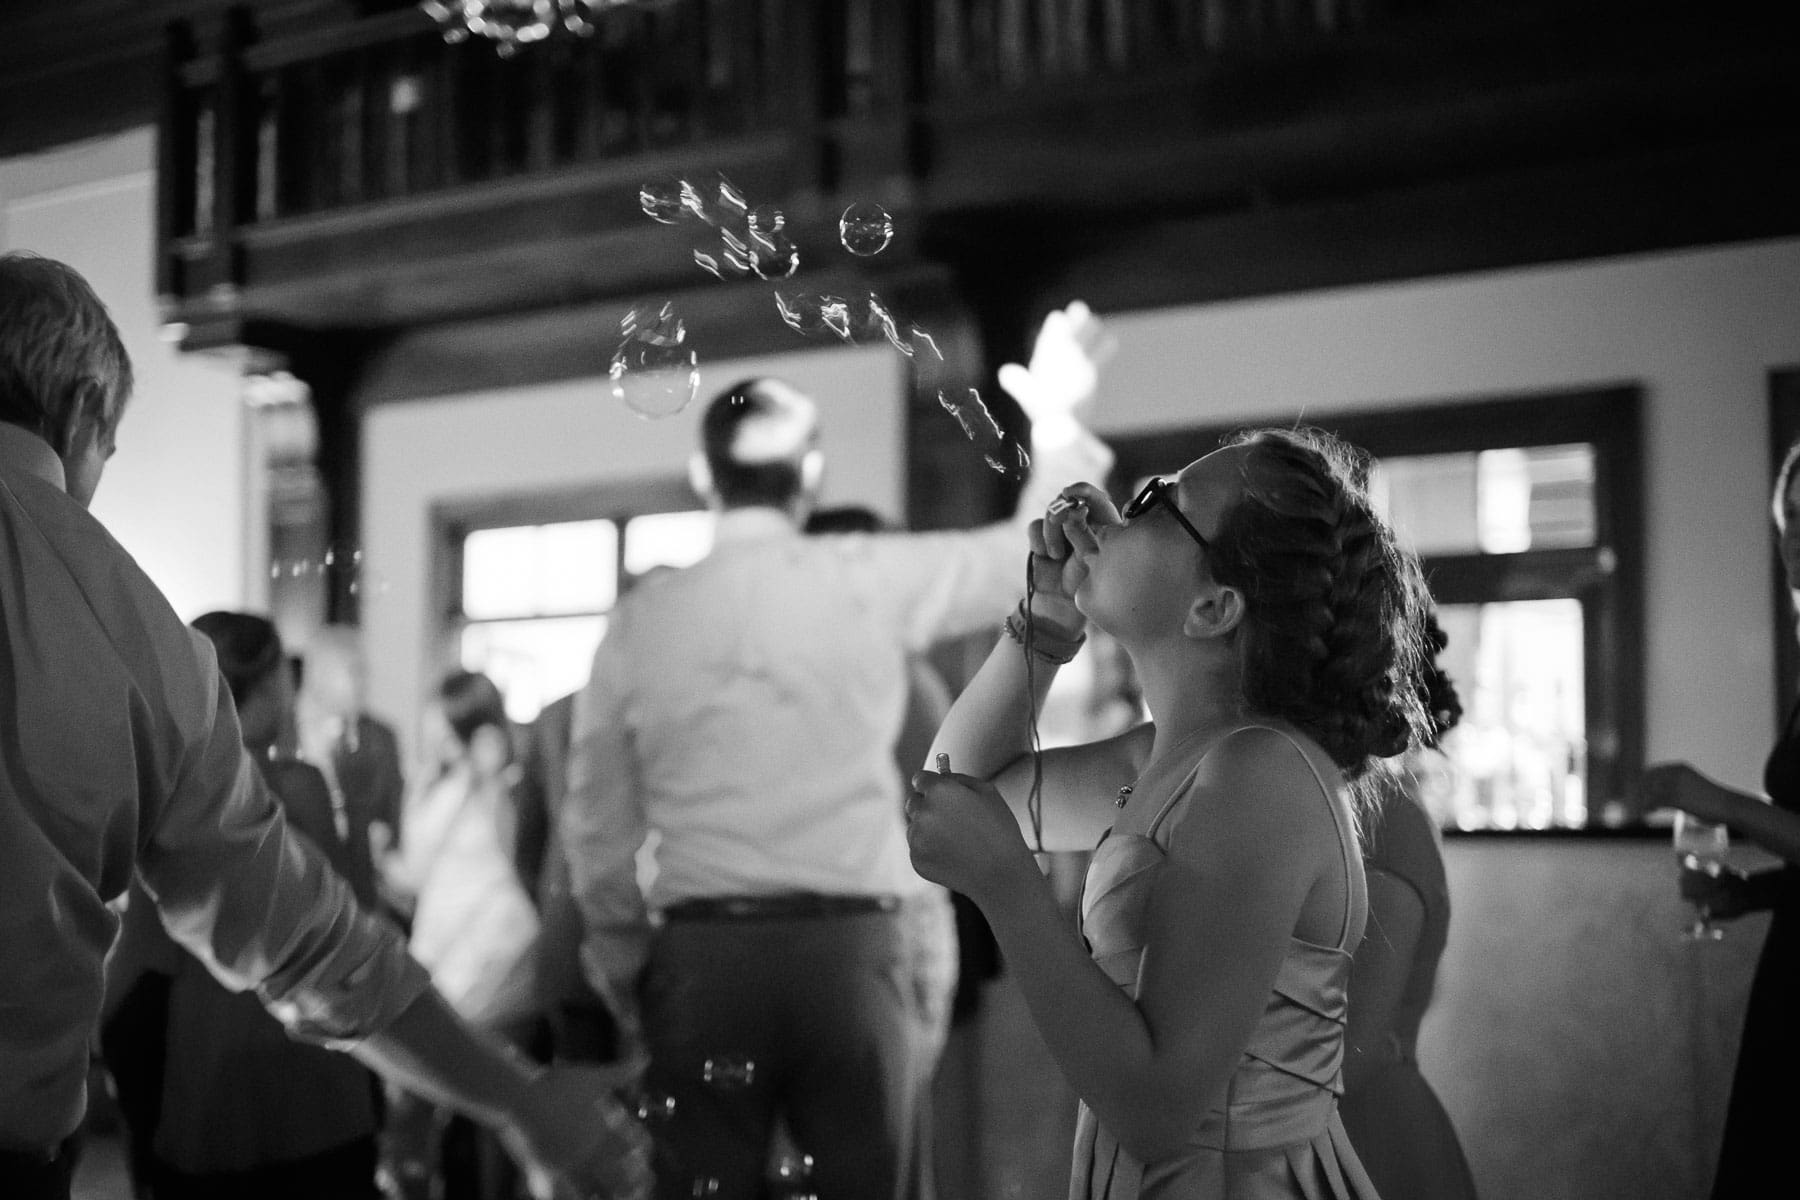 A girl blows soap bubbles up into the air on the dancefloor at this Boulevard Club wedding.